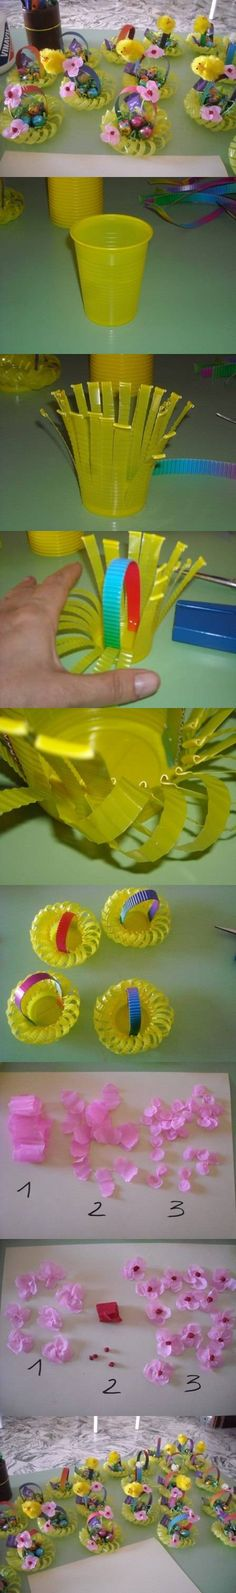 DIY Plastic Cup Flower Basket DIY Projects - so cute for Easter place cards, table decor, or giving little treats. Kids Crafts, Diy And Crafts, Paper Crafts, Spring Crafts, Holiday Crafts, Craft Tutorials, Craft Projects, Free Tutorials, Plastic Bottle Crafts